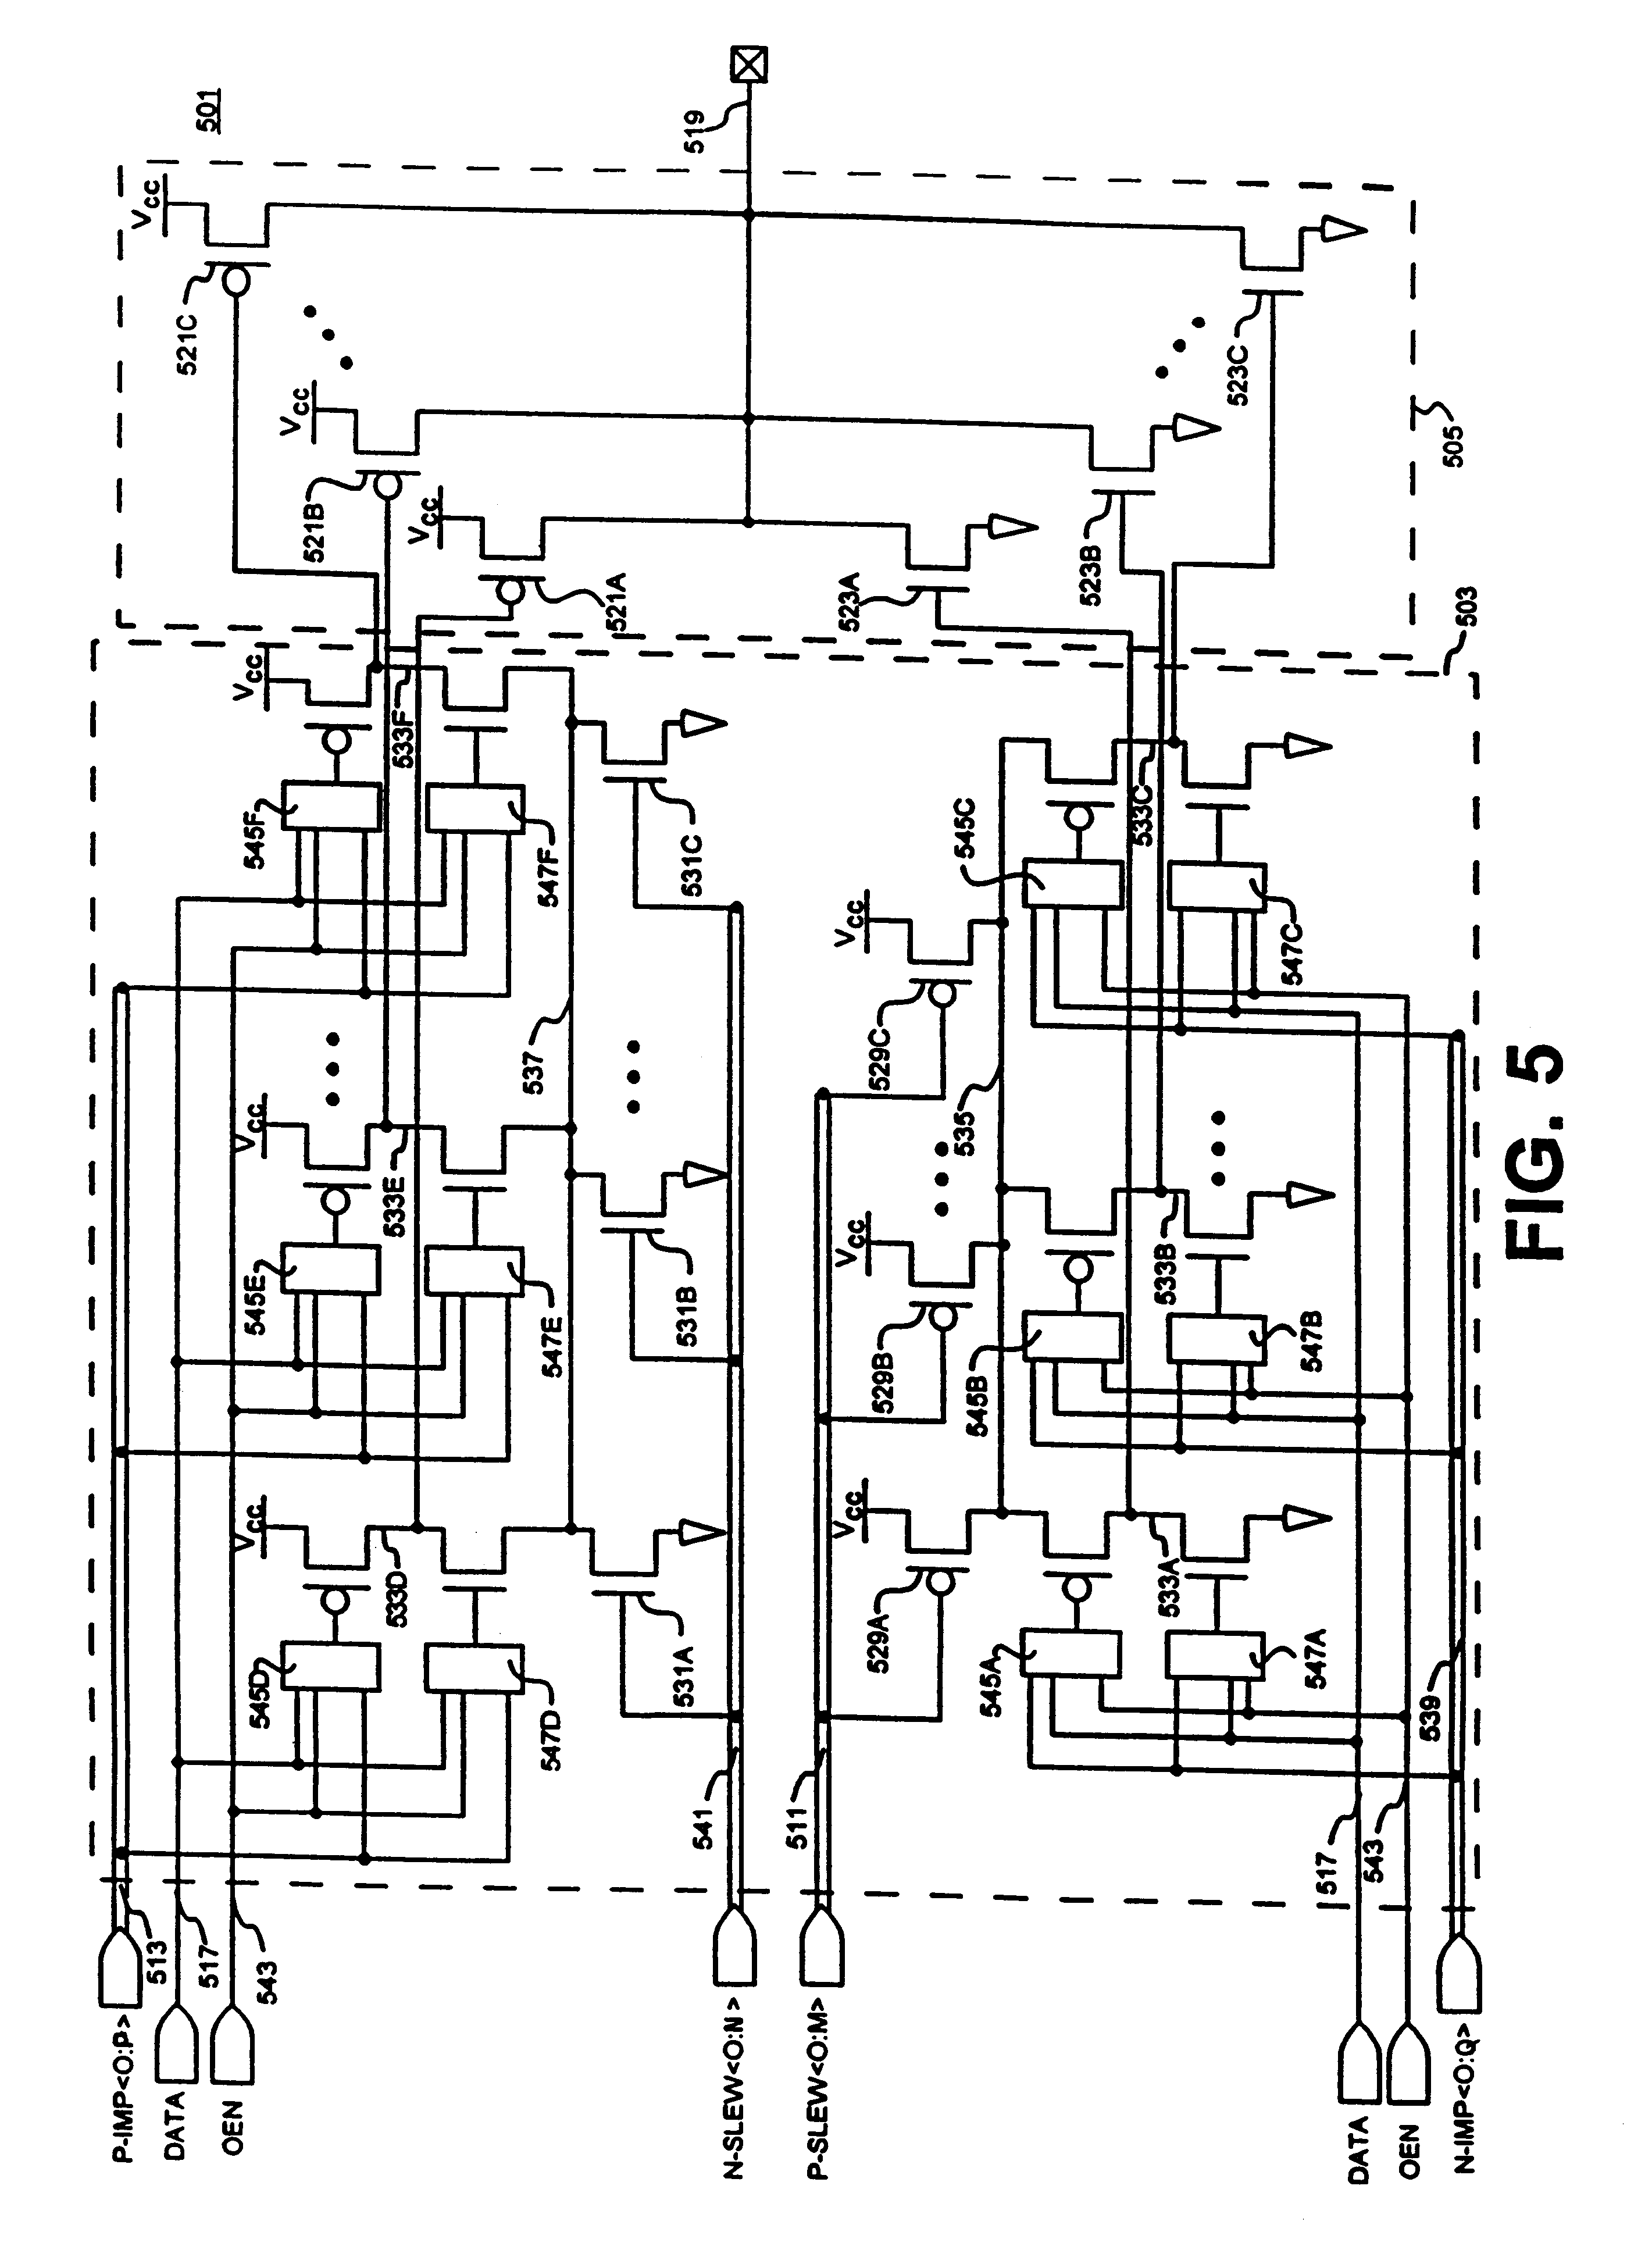 patent us6288563 - slew rate control